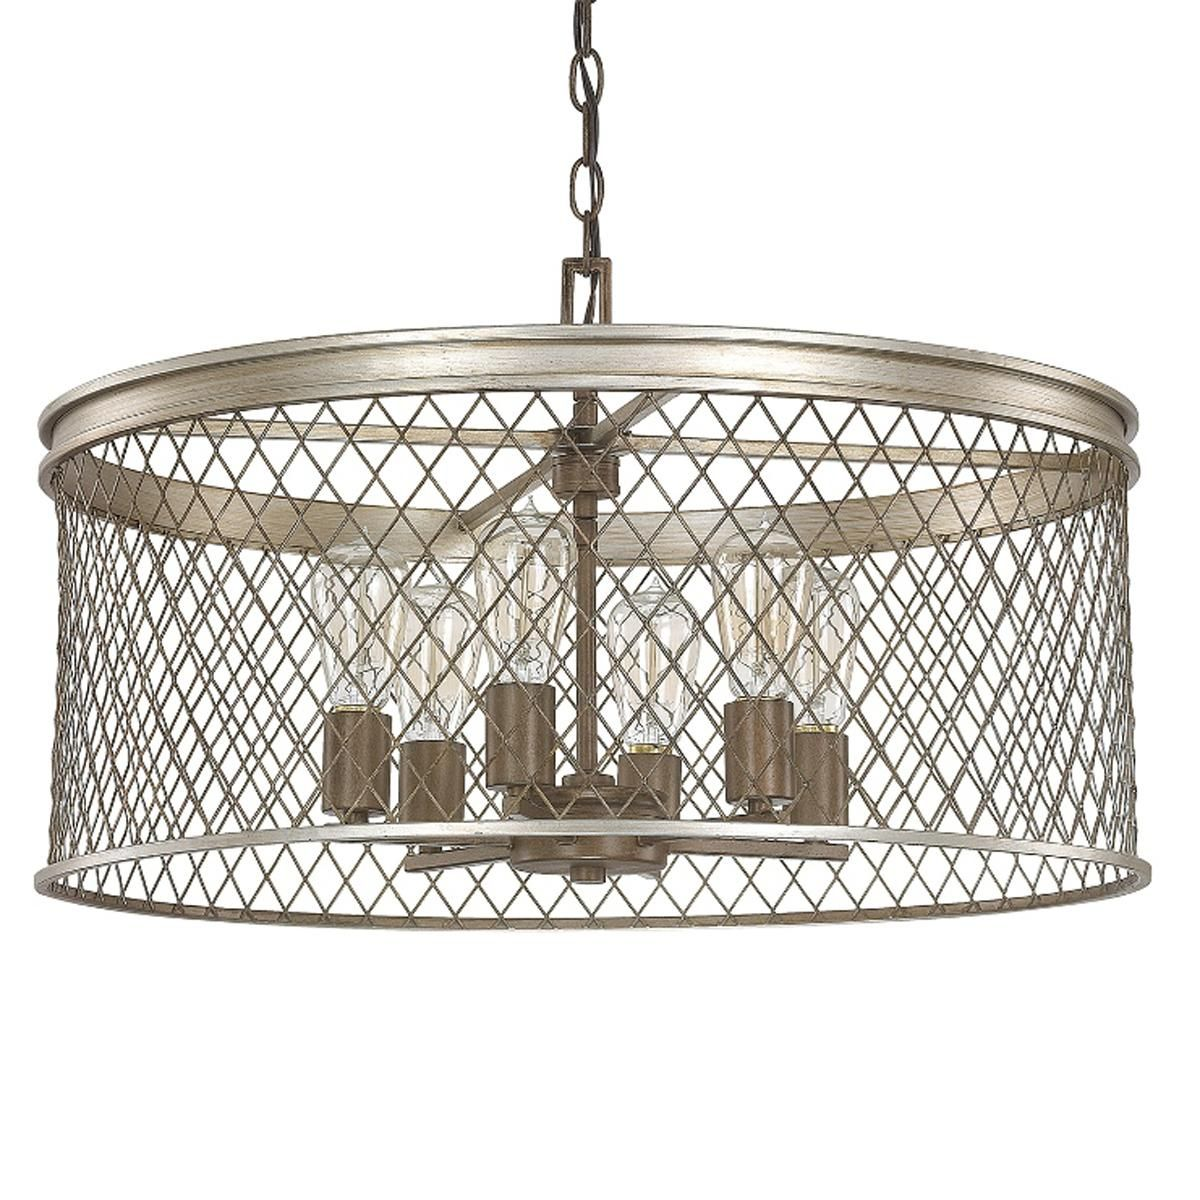 Contemporary Cage Chandelier 6 Light Foyer Pendant Lighting Drum Chandelier Capital Lighting